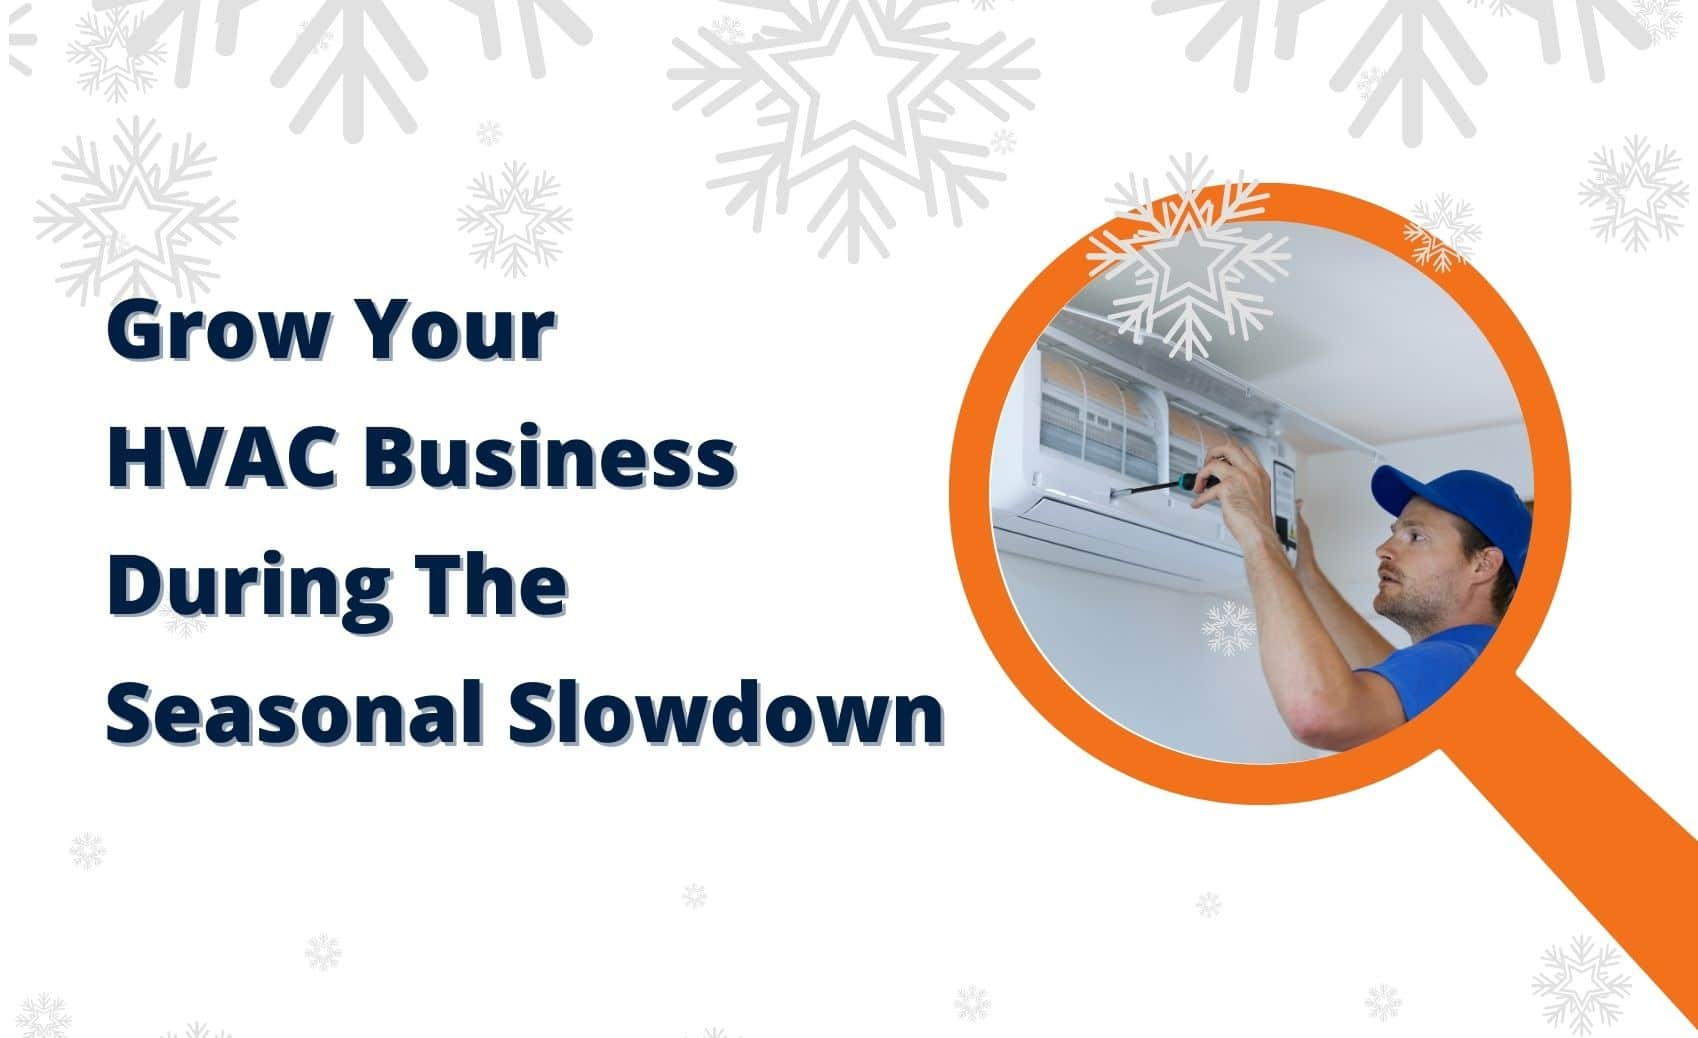 How To Grow Your HVAC Business During The Seasonal Slowdown Blog Image